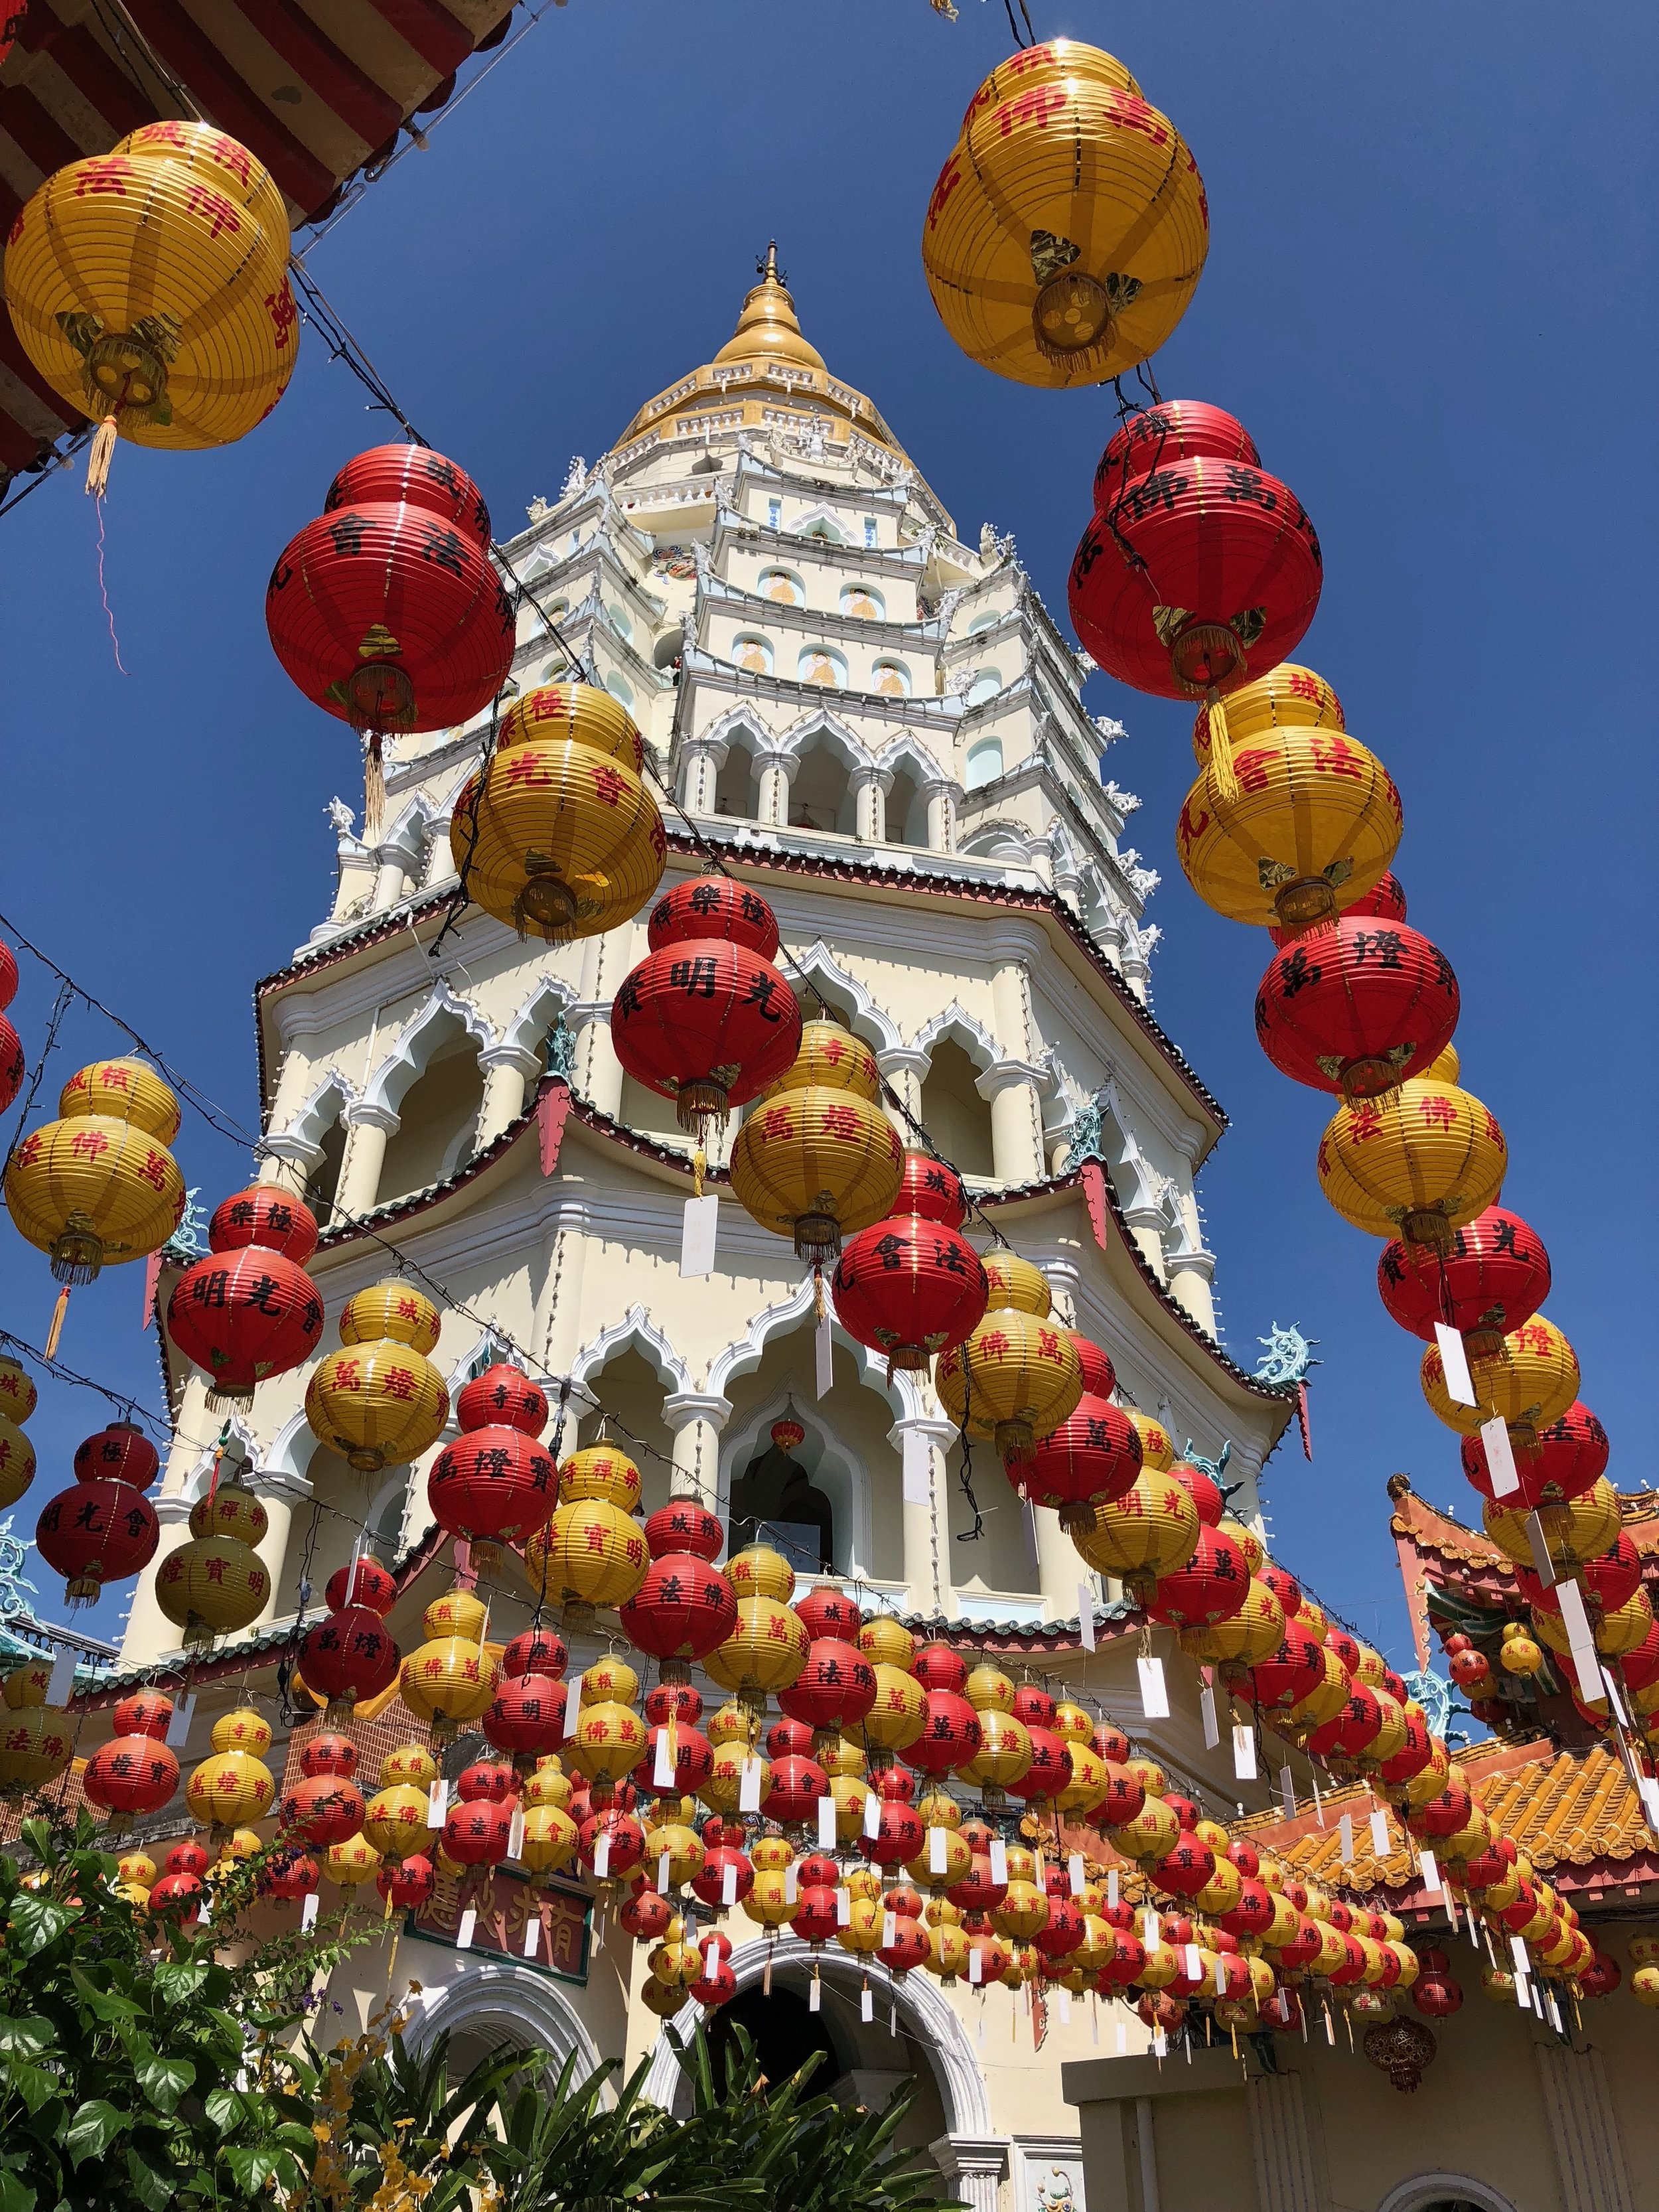 The seven-story pagoda combining Chinese, Thai, and Burmese architecture (starting from the bottom to the top). The red and yellow lanterns add to the loveliness of temple.